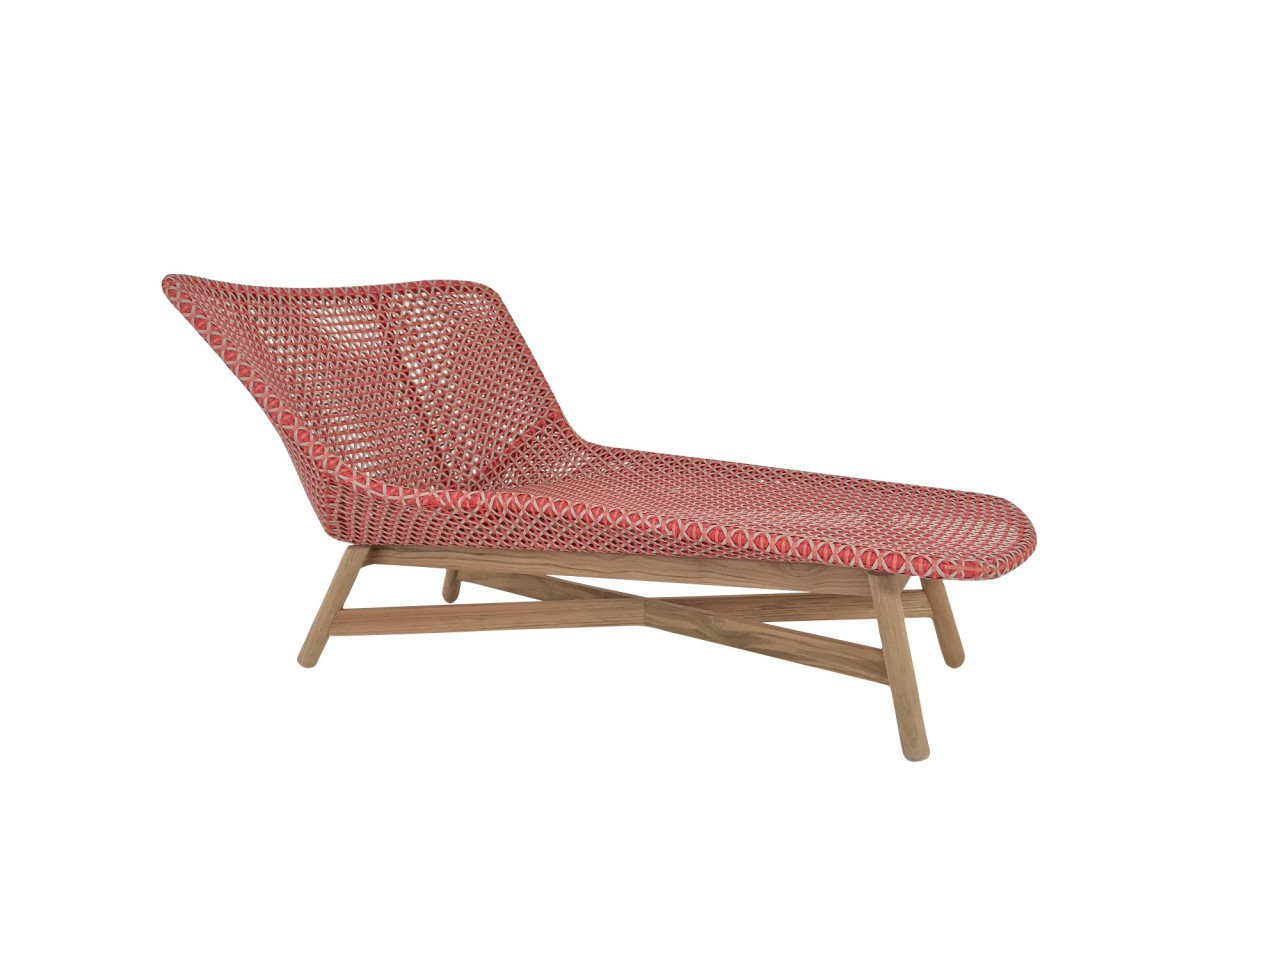 Dedon Mbrace Dedon Mbrace Daybed Liege In Der Farbe Spice Dedon